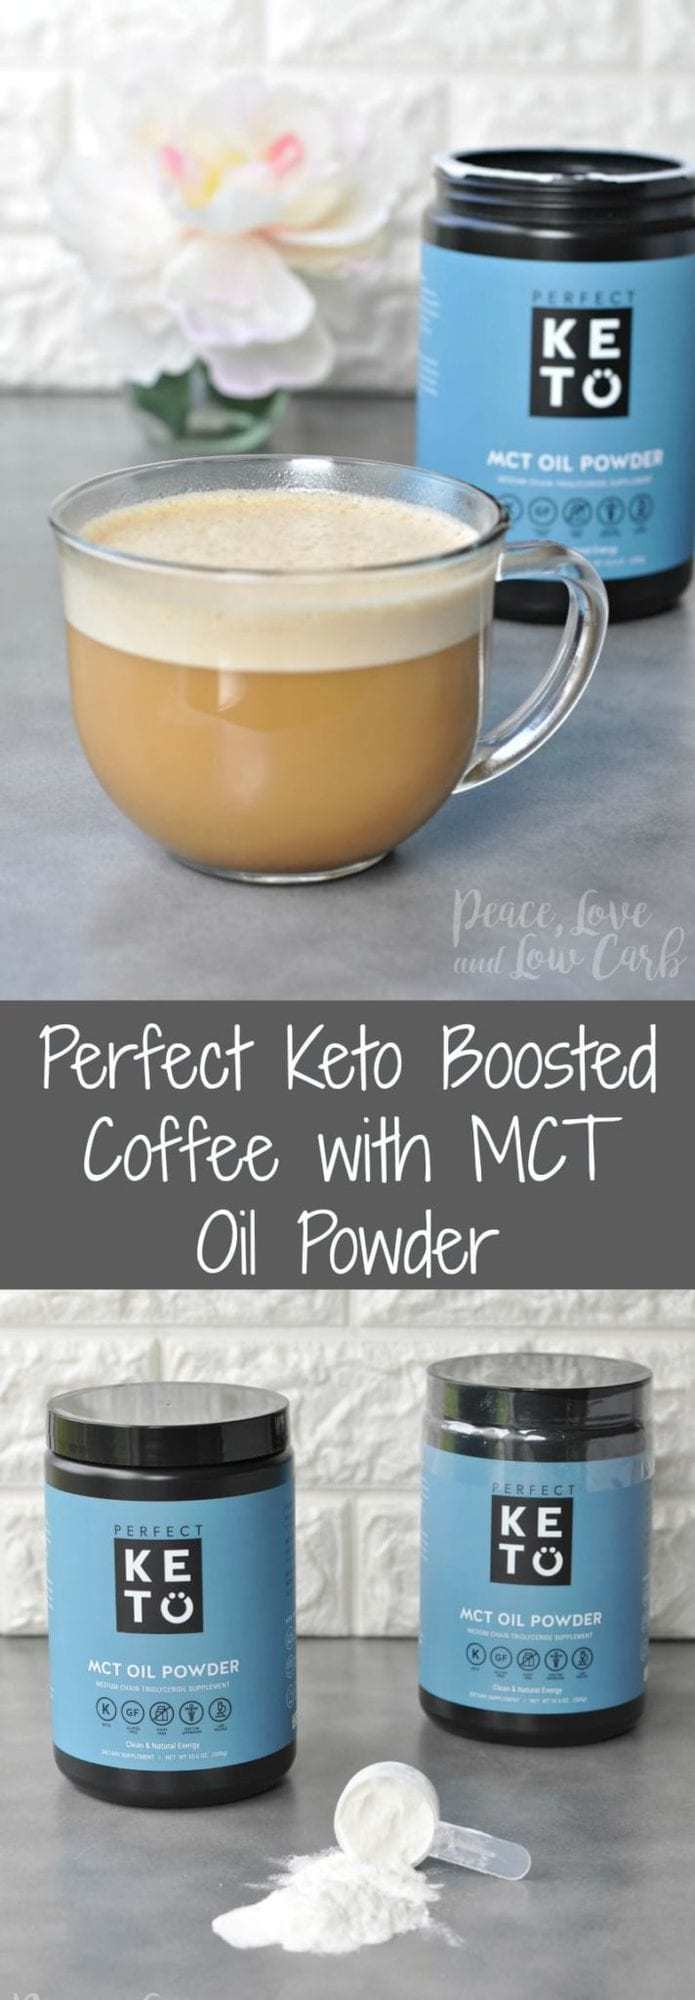 Perfect Keto Boosted Coffee with MCT Oil Powder | Peace Love and Low Carb